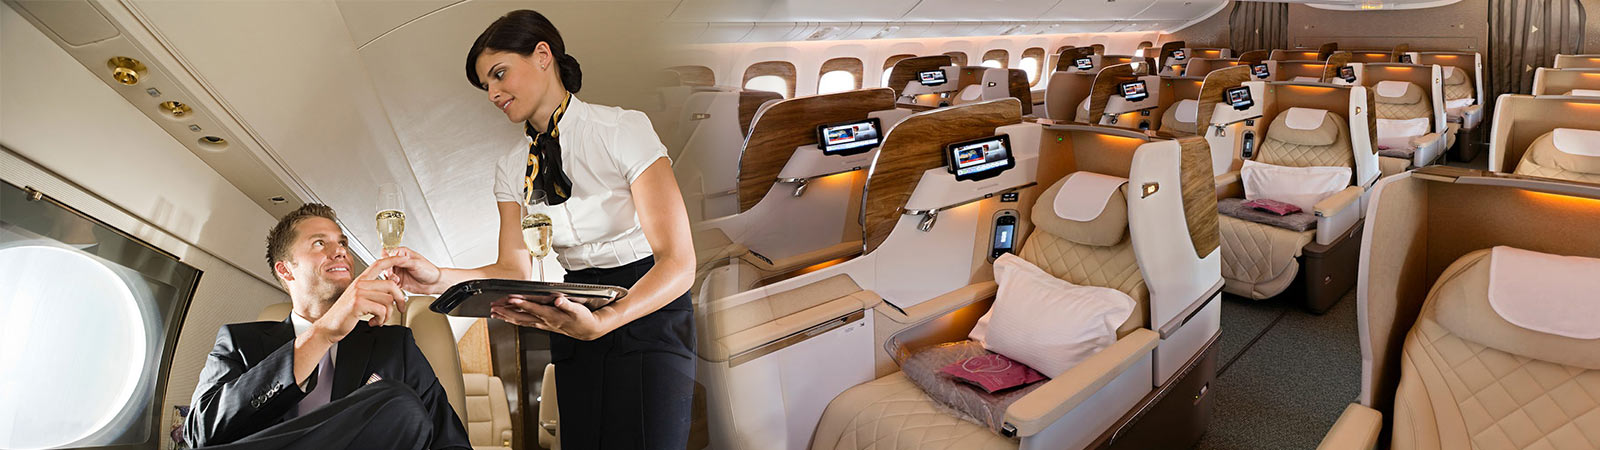 Business-class flights to Kochi from the USA